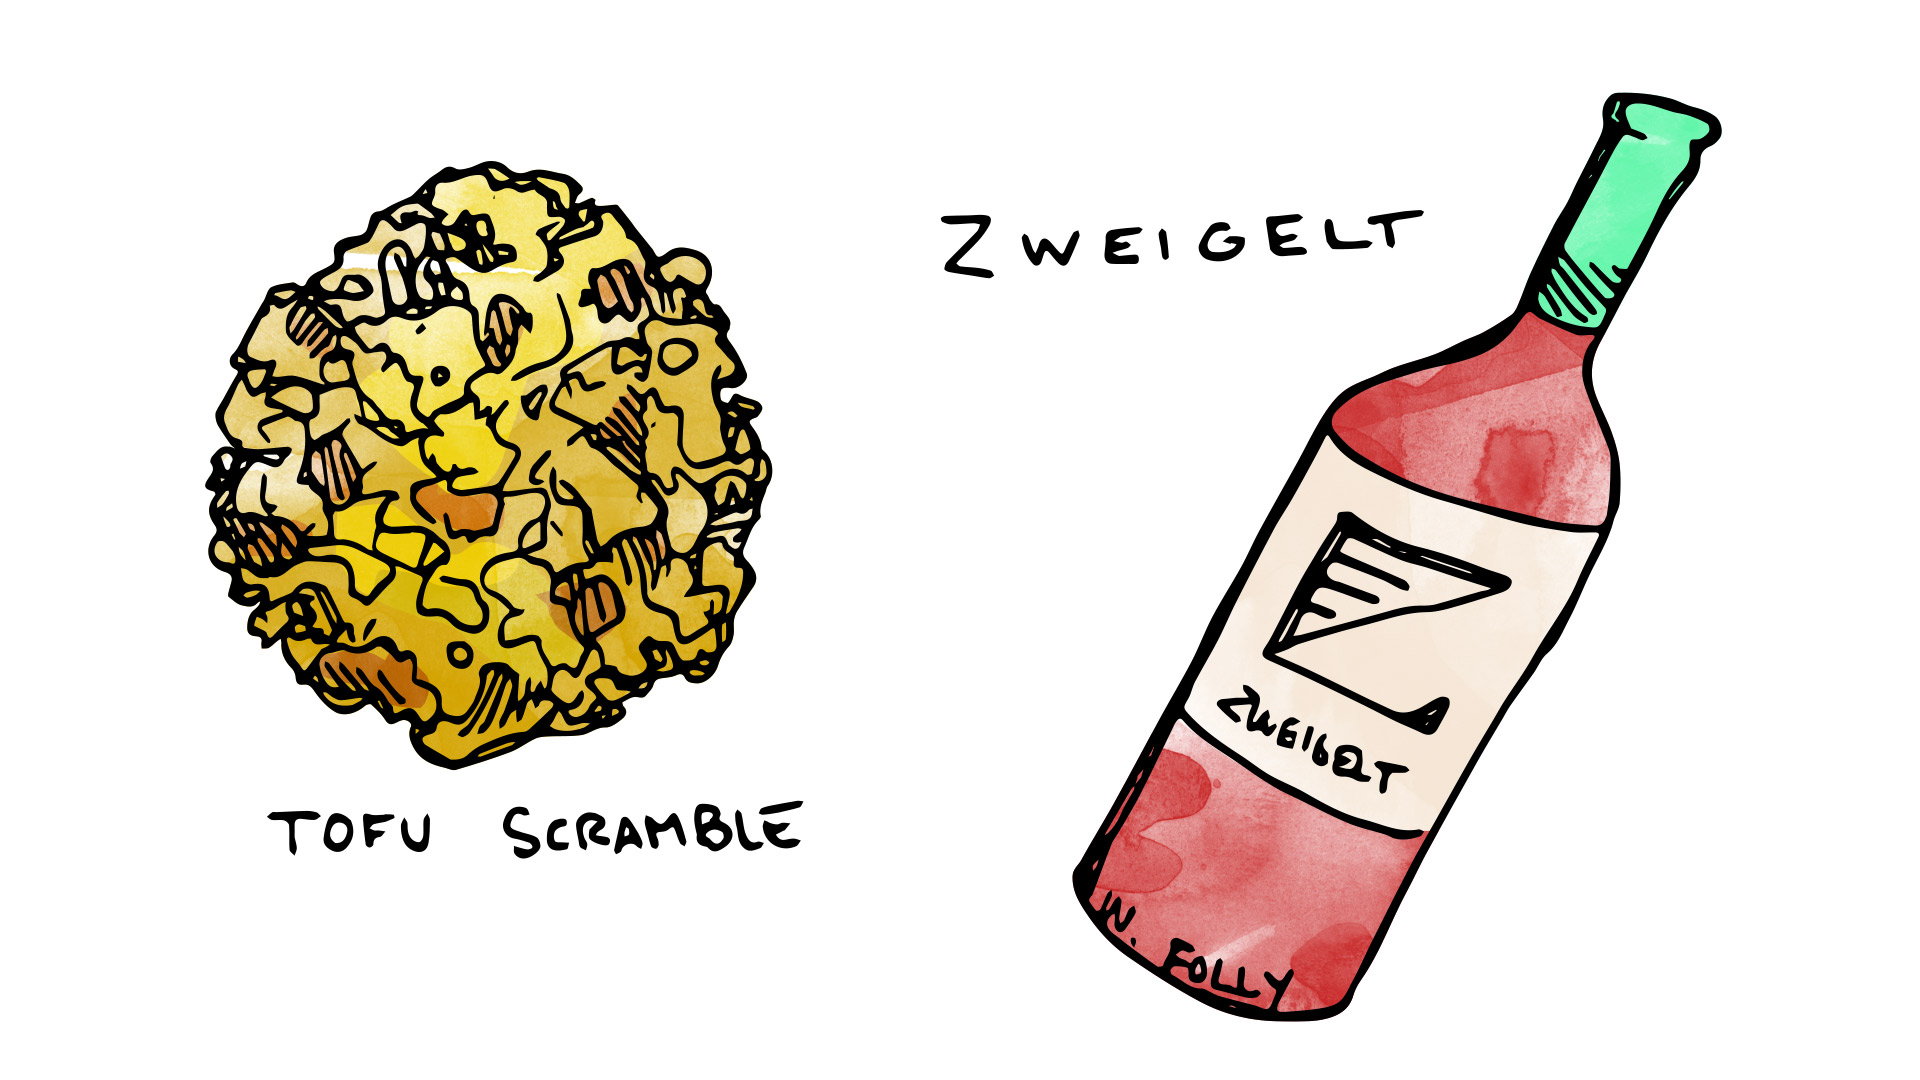 Tofu scramble with soy chorizo wine pairing with zweigelt illustration by Wine Folly